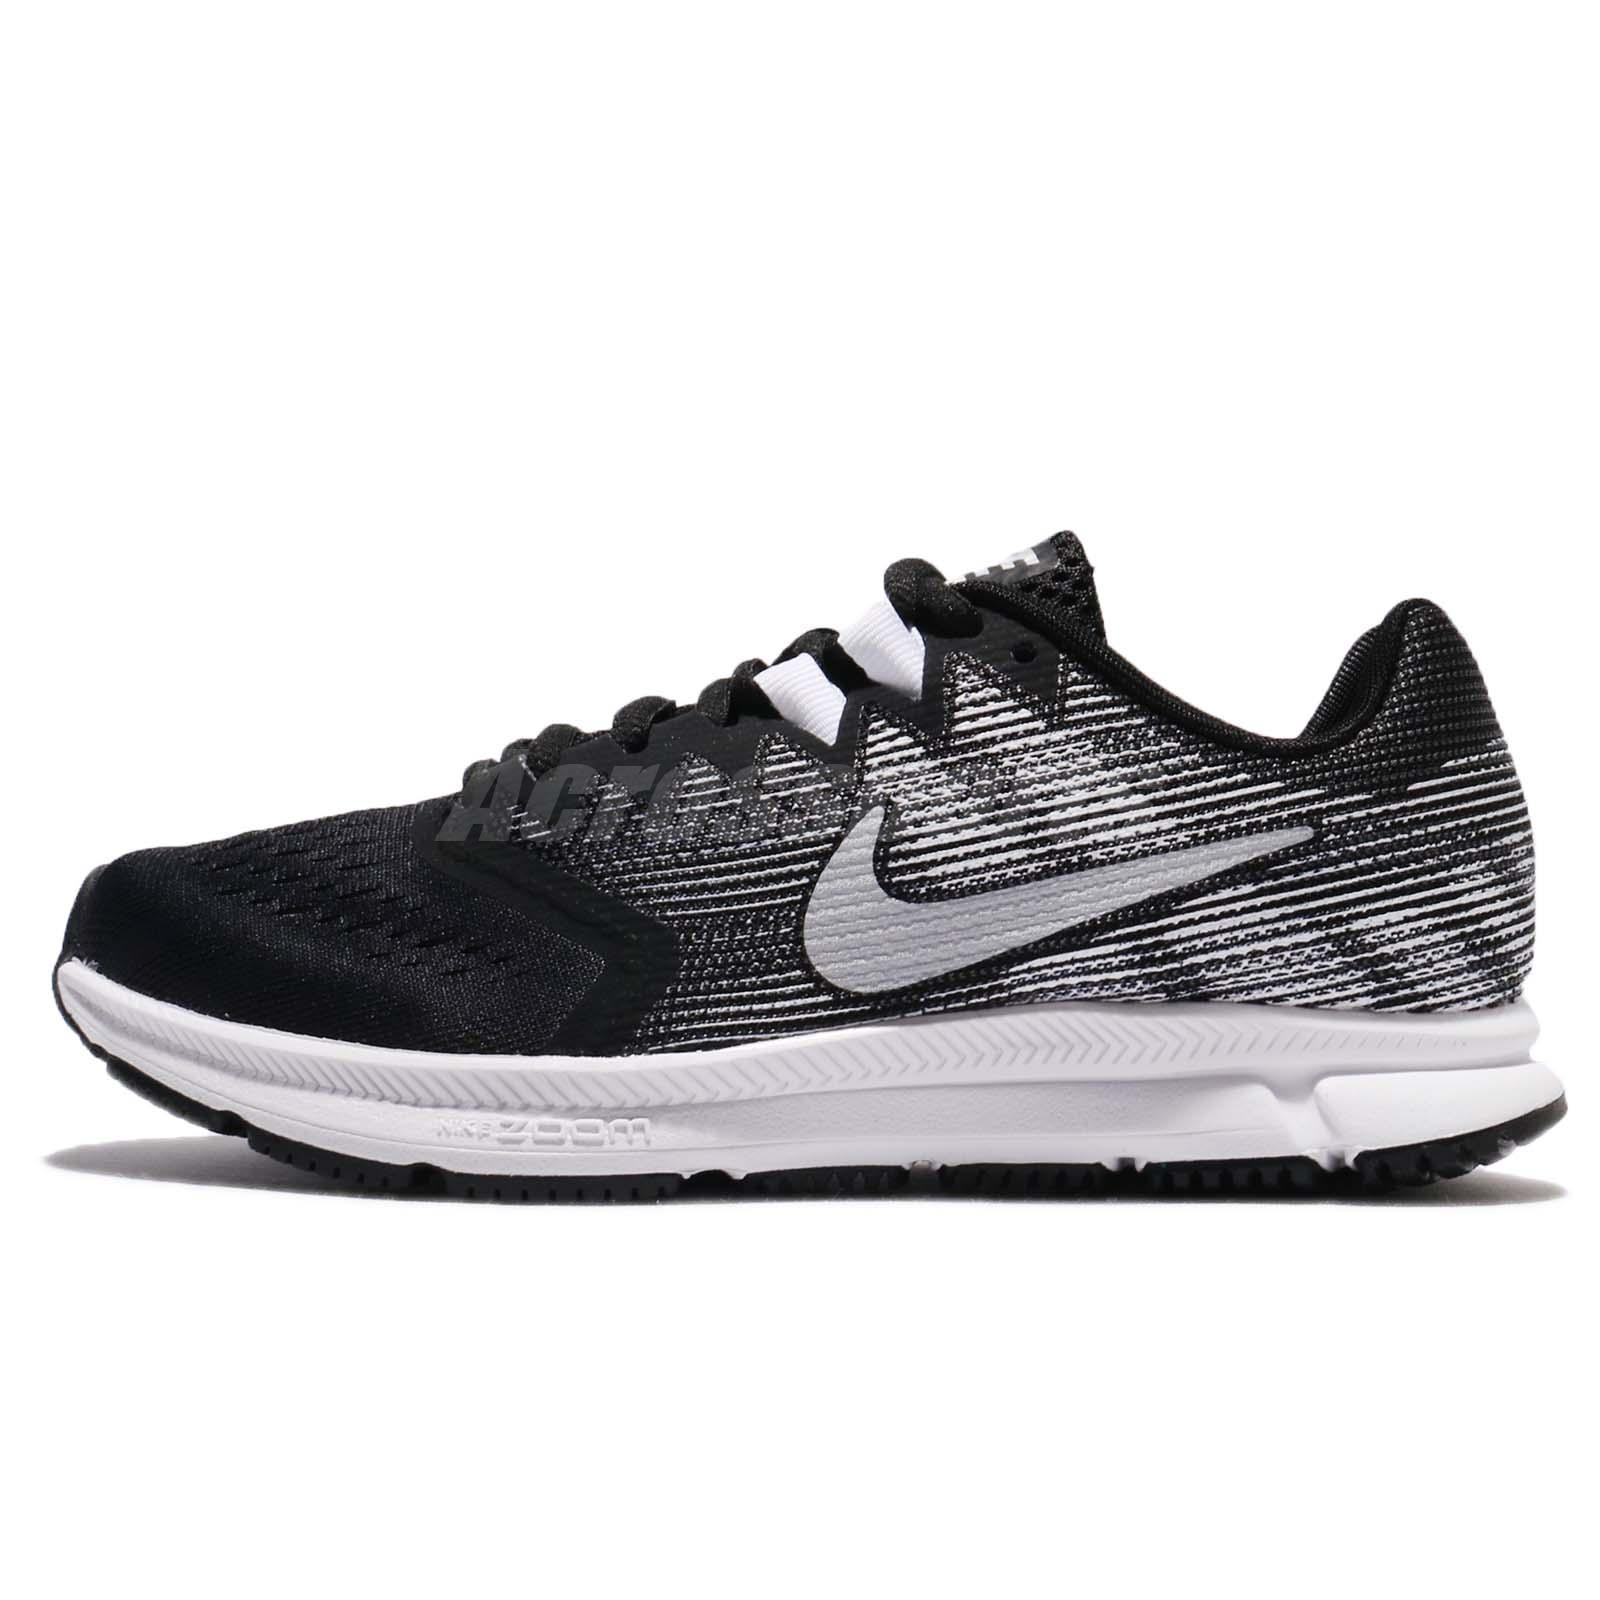 35c10006964a Wmns Nike Zoom Span 2 II Black Metallic Silver Women Running Shoes 909007- 001